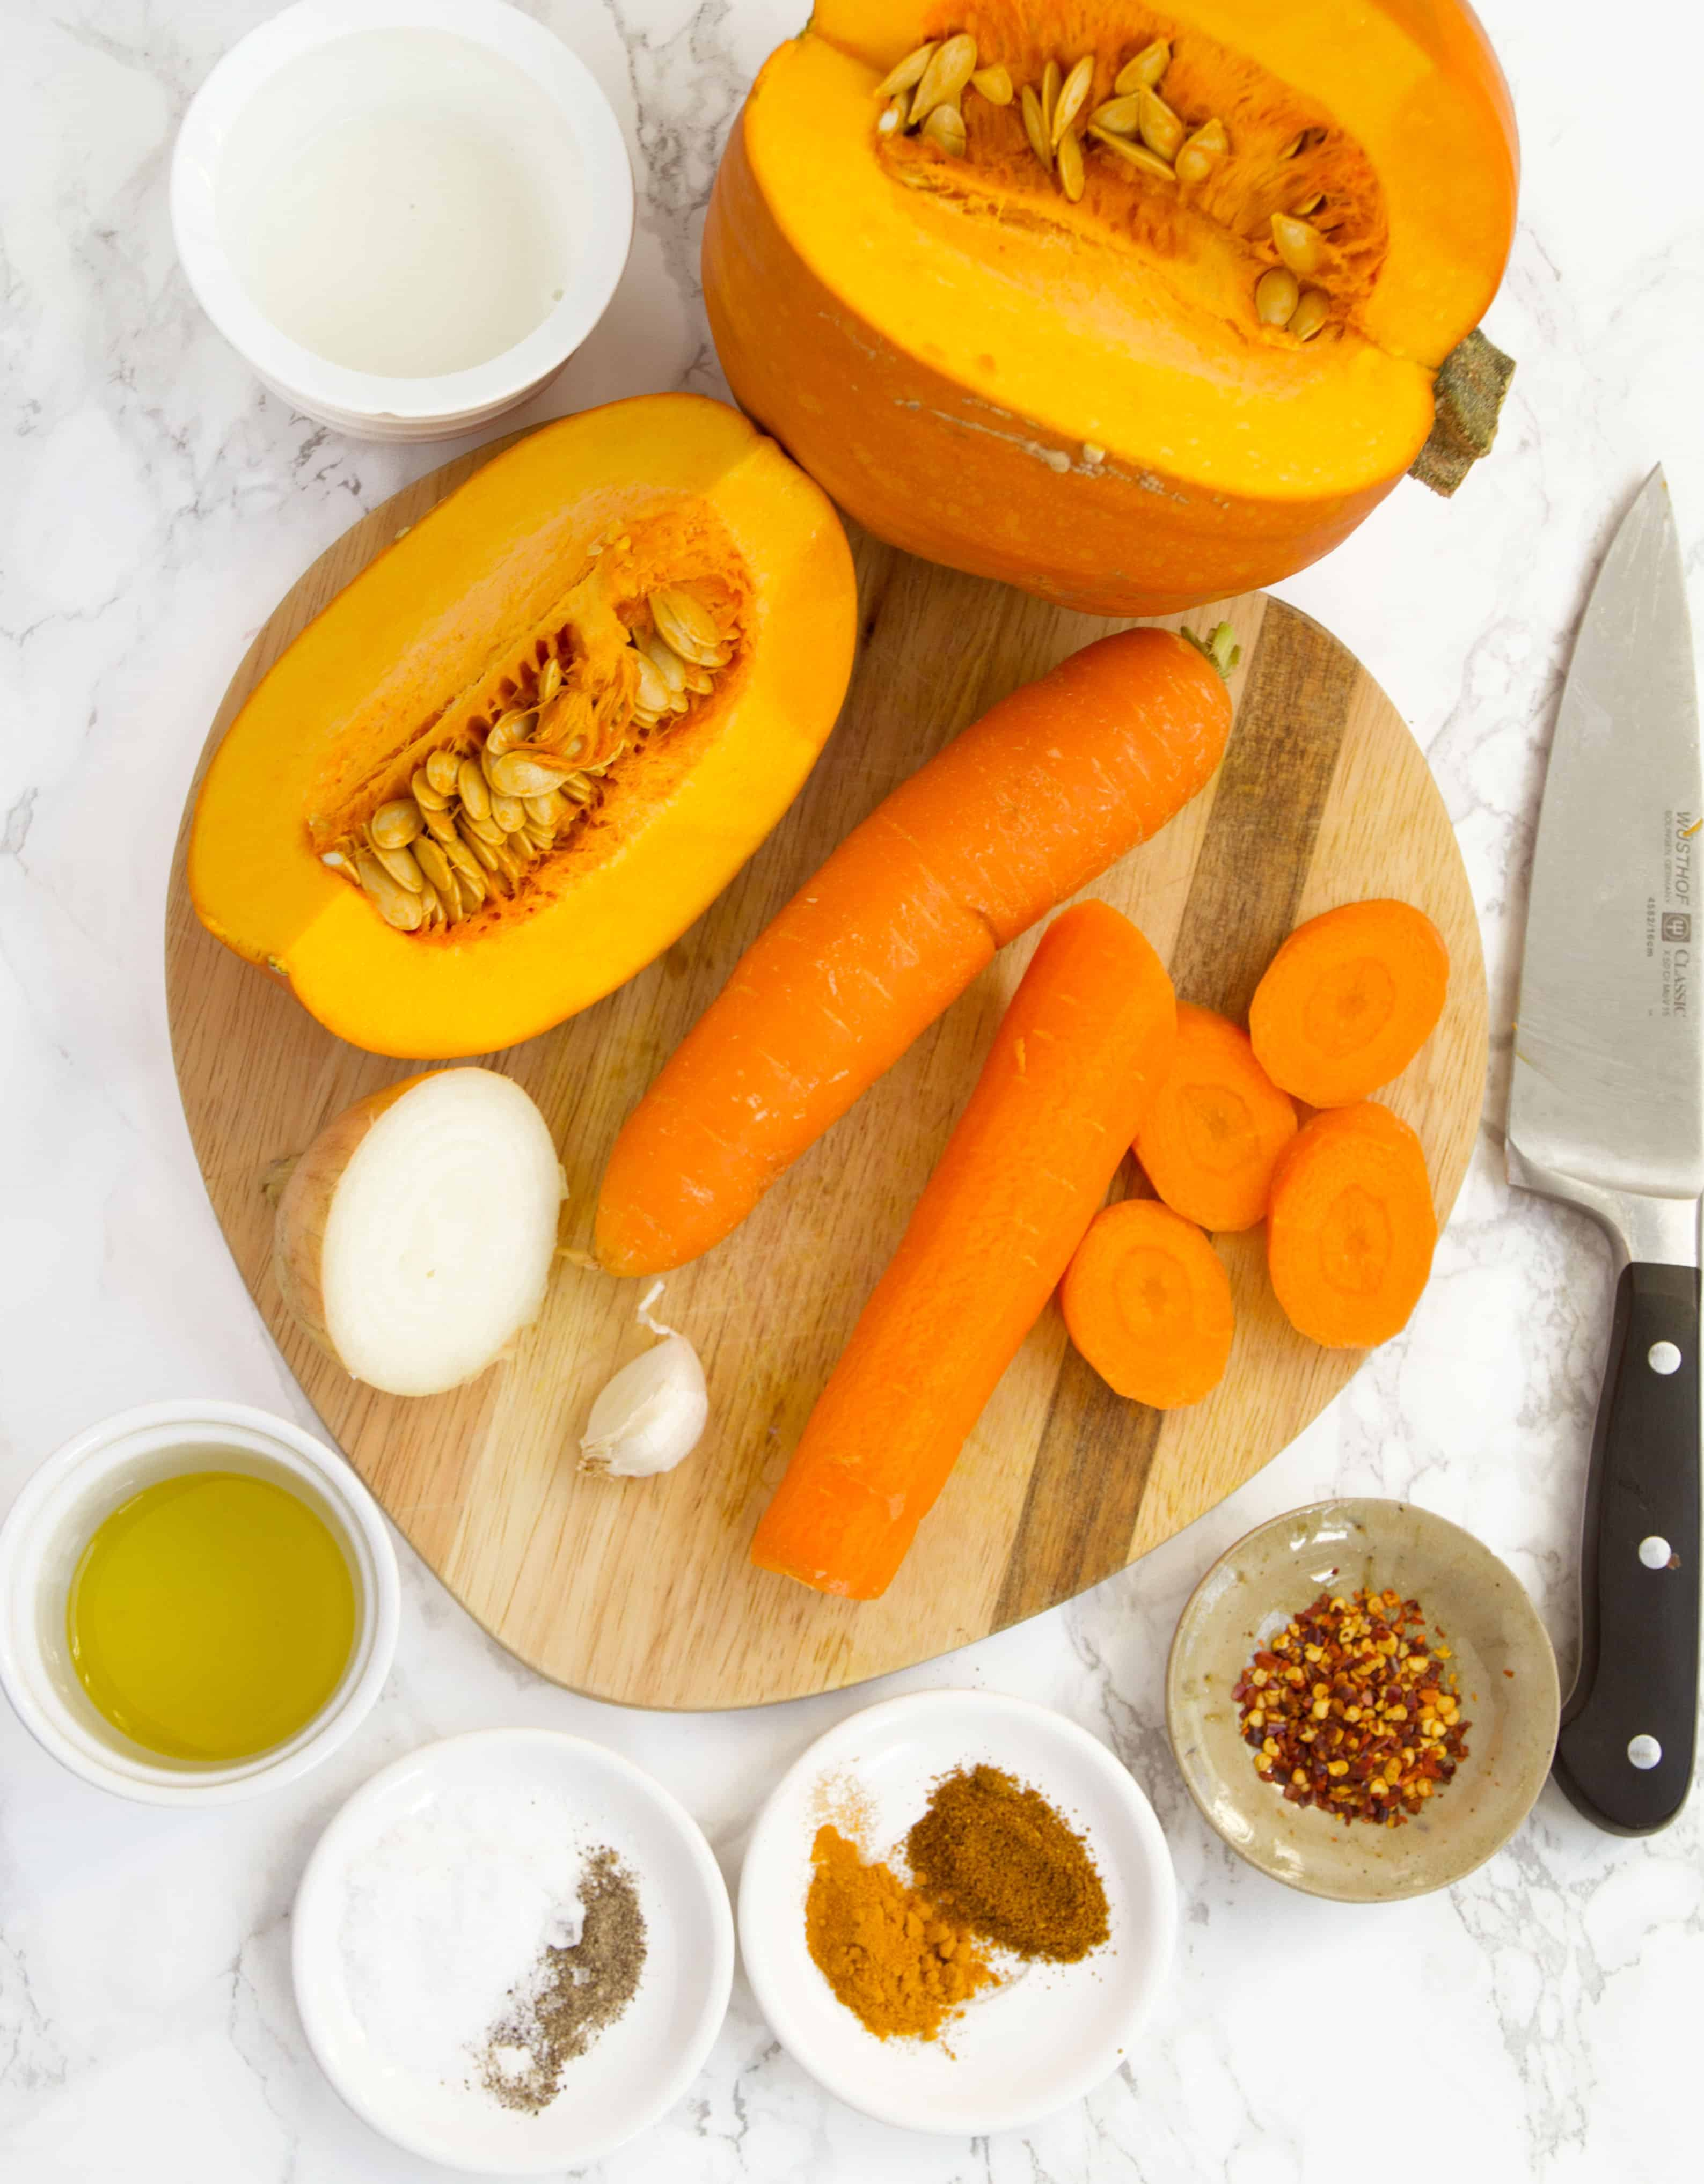 Ingredients to make a delicious pumpkin carrot soup.